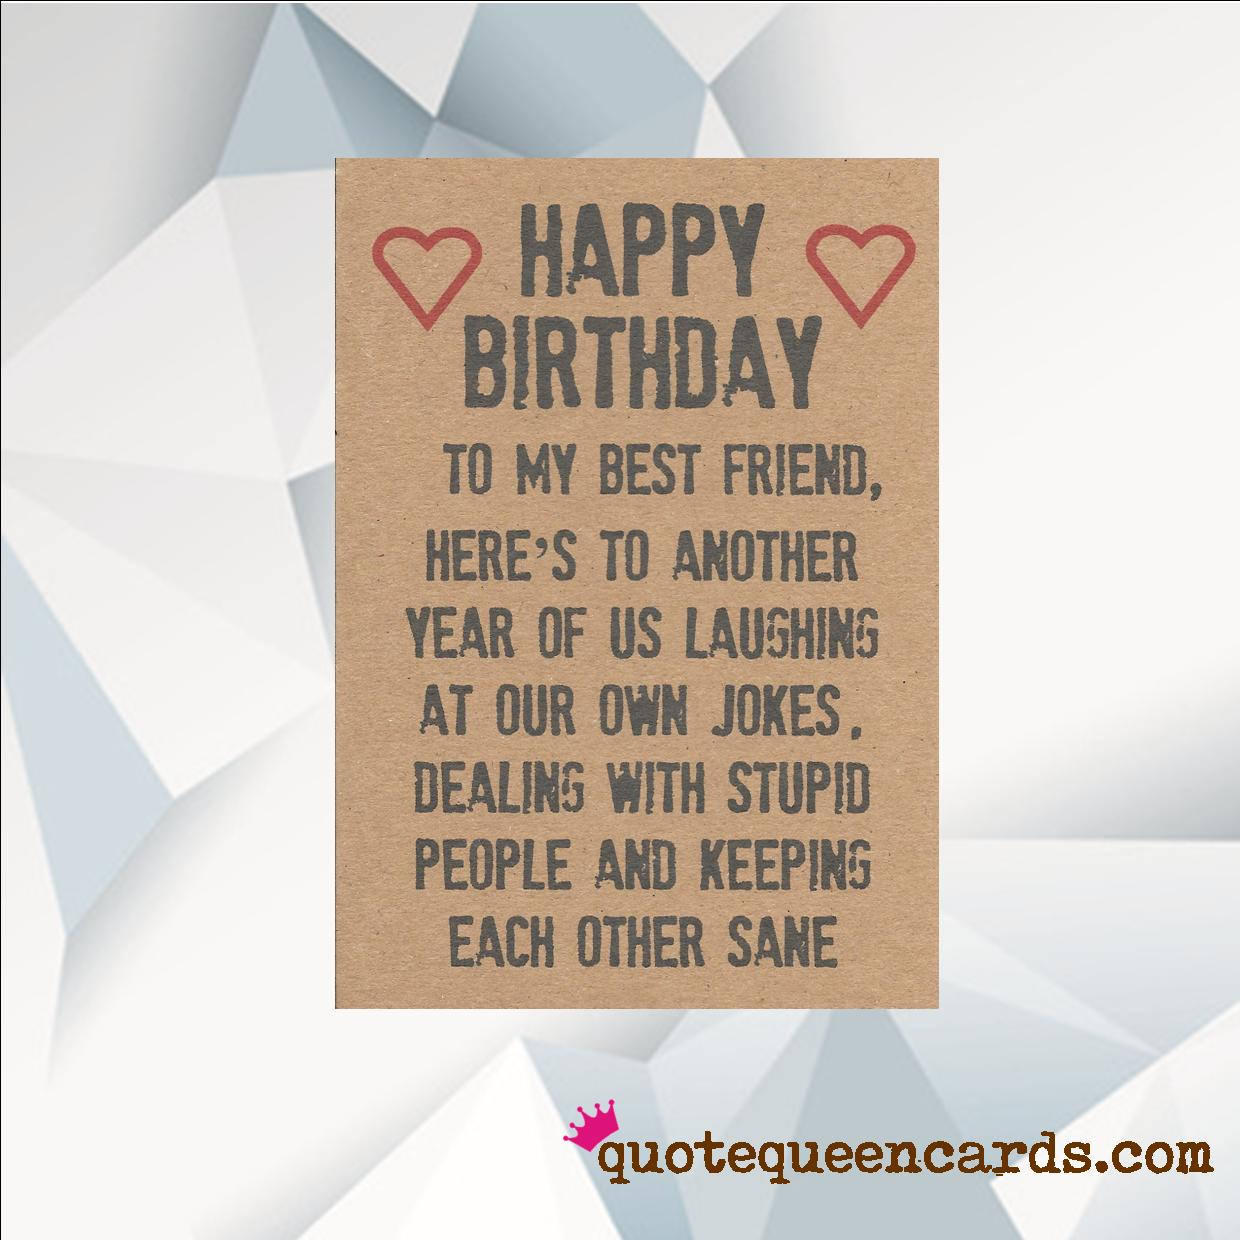 happy birthday best friend funny birthday card for friend etsy